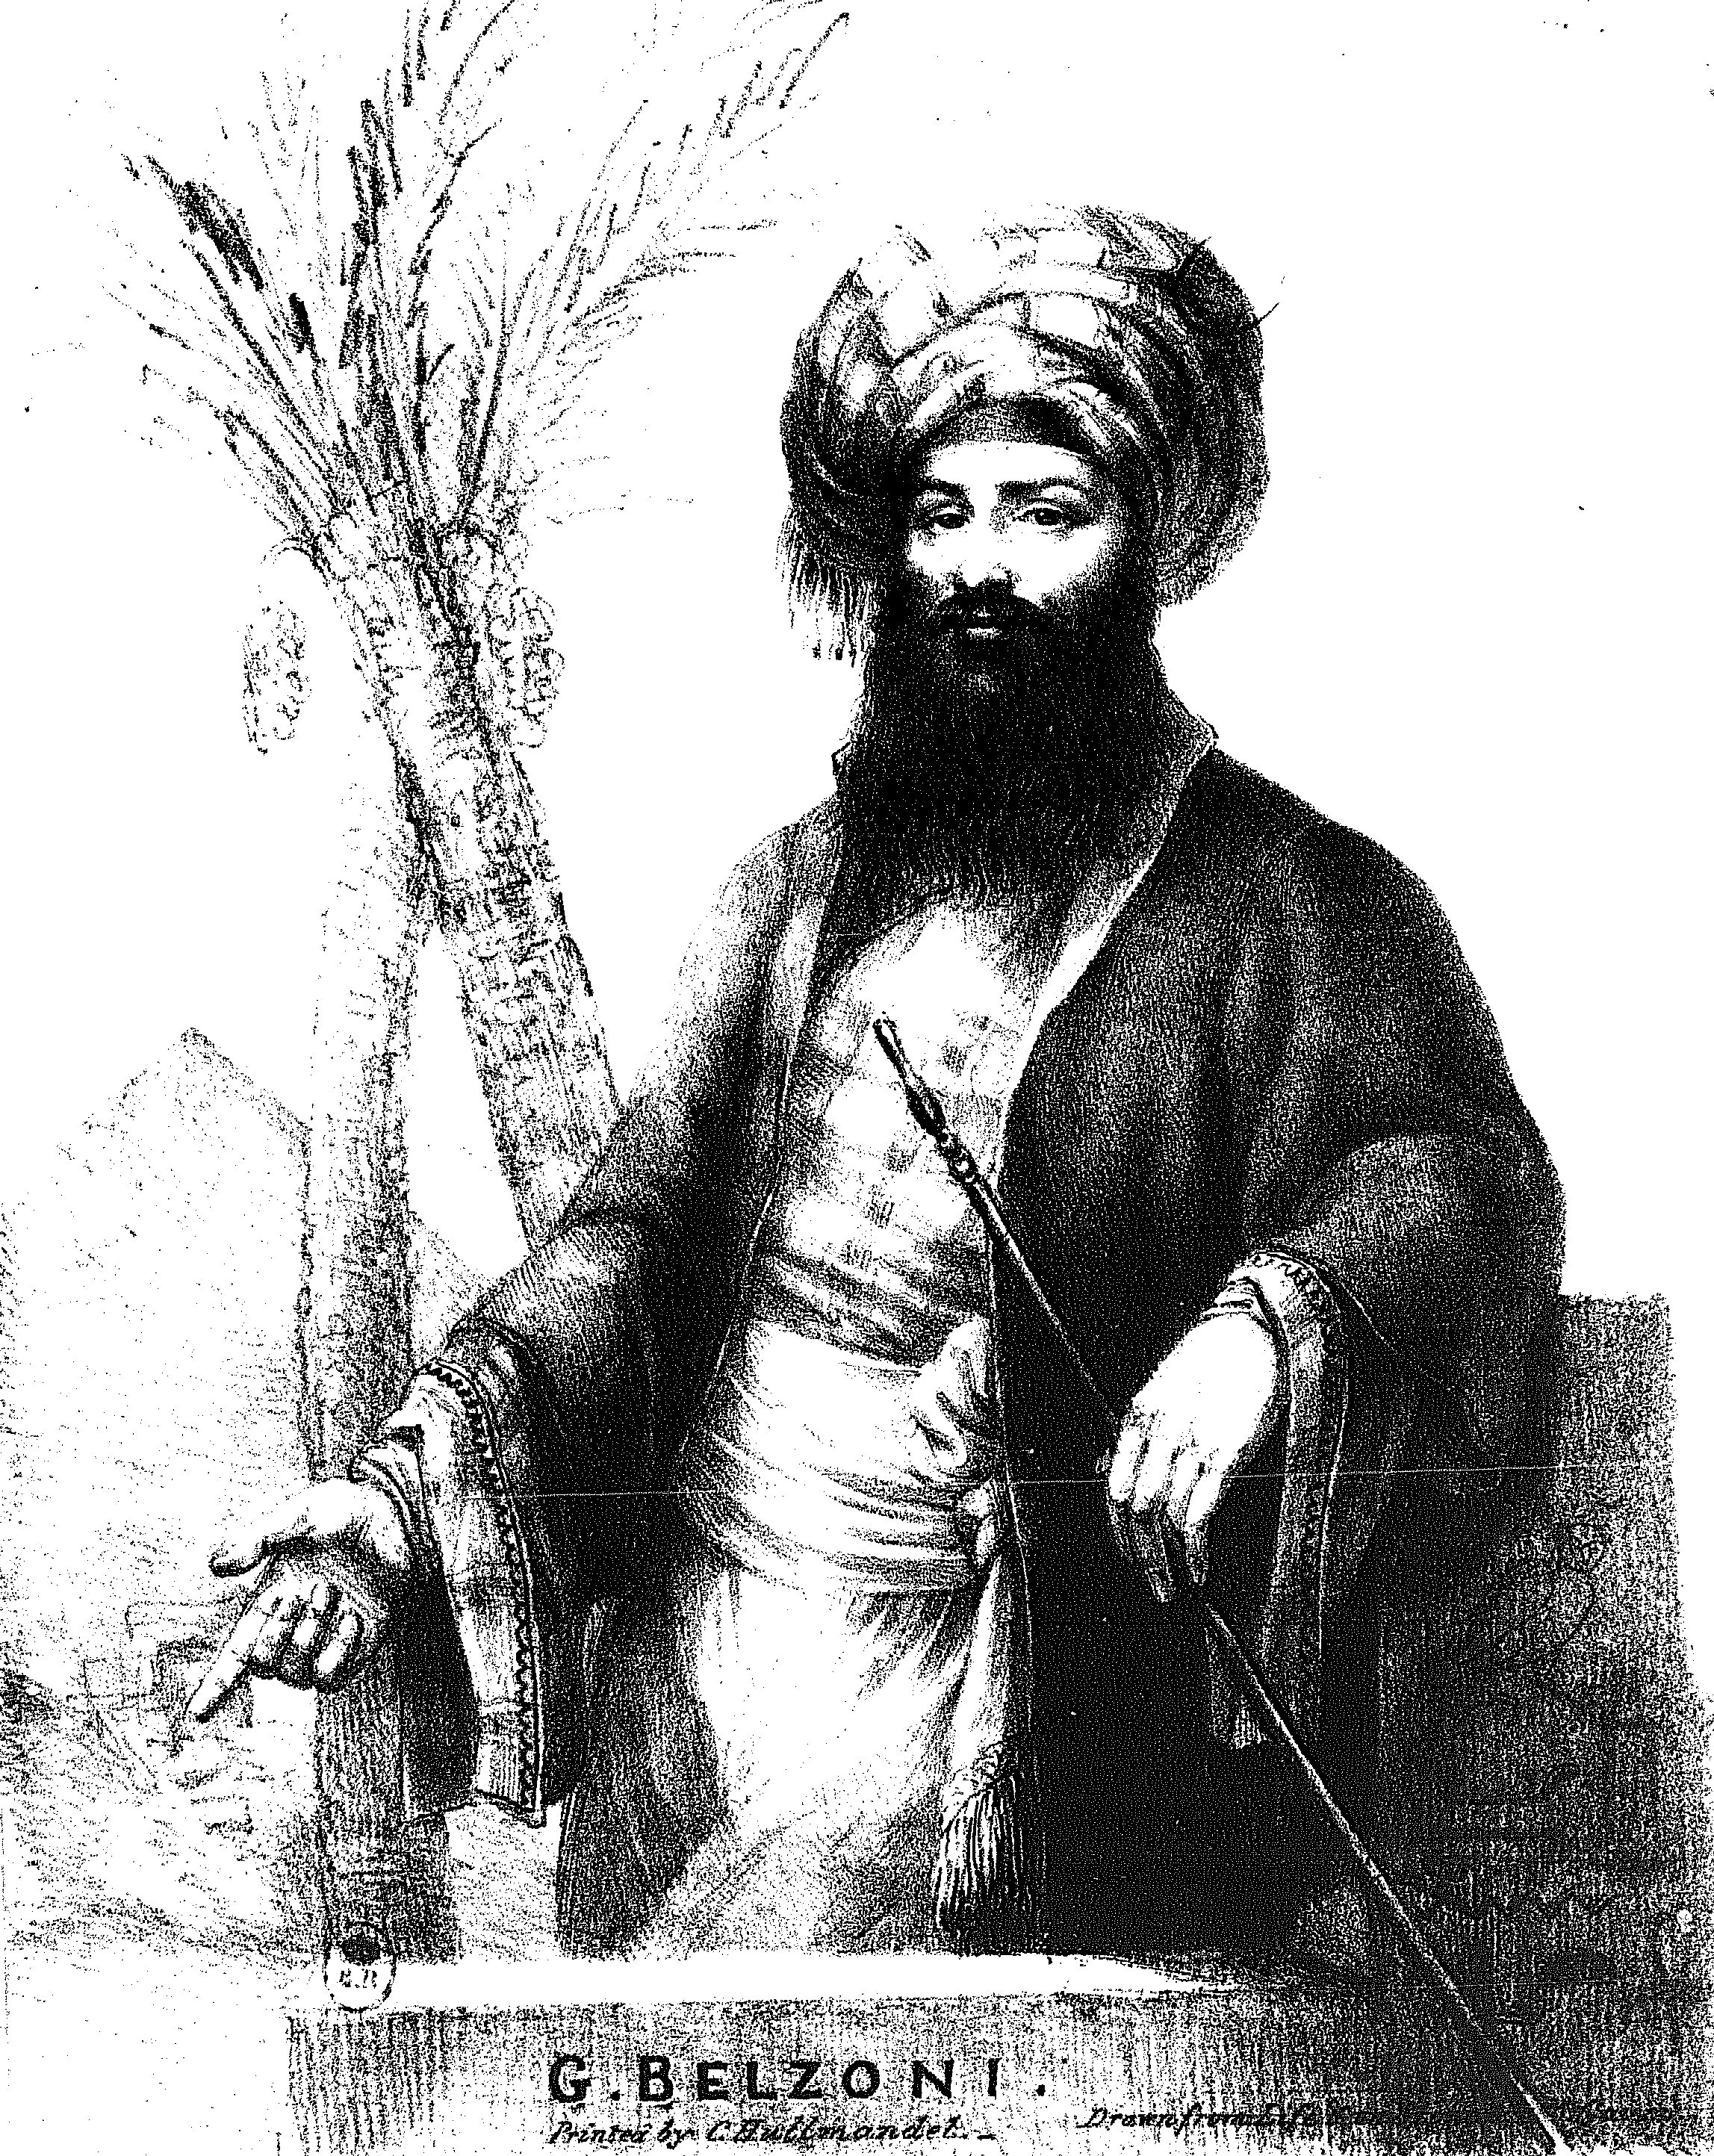 Giovanni Battista Belzoni<ref>from his publication ''[https://archive.org/details/narrativeofopera00belz/page/n10 Narrative of the Operations and Recent Discoveries Within the Pyramids, Temples, Tombs and Excavations in Egypt and Nubia]'', London, 1820.</ref>